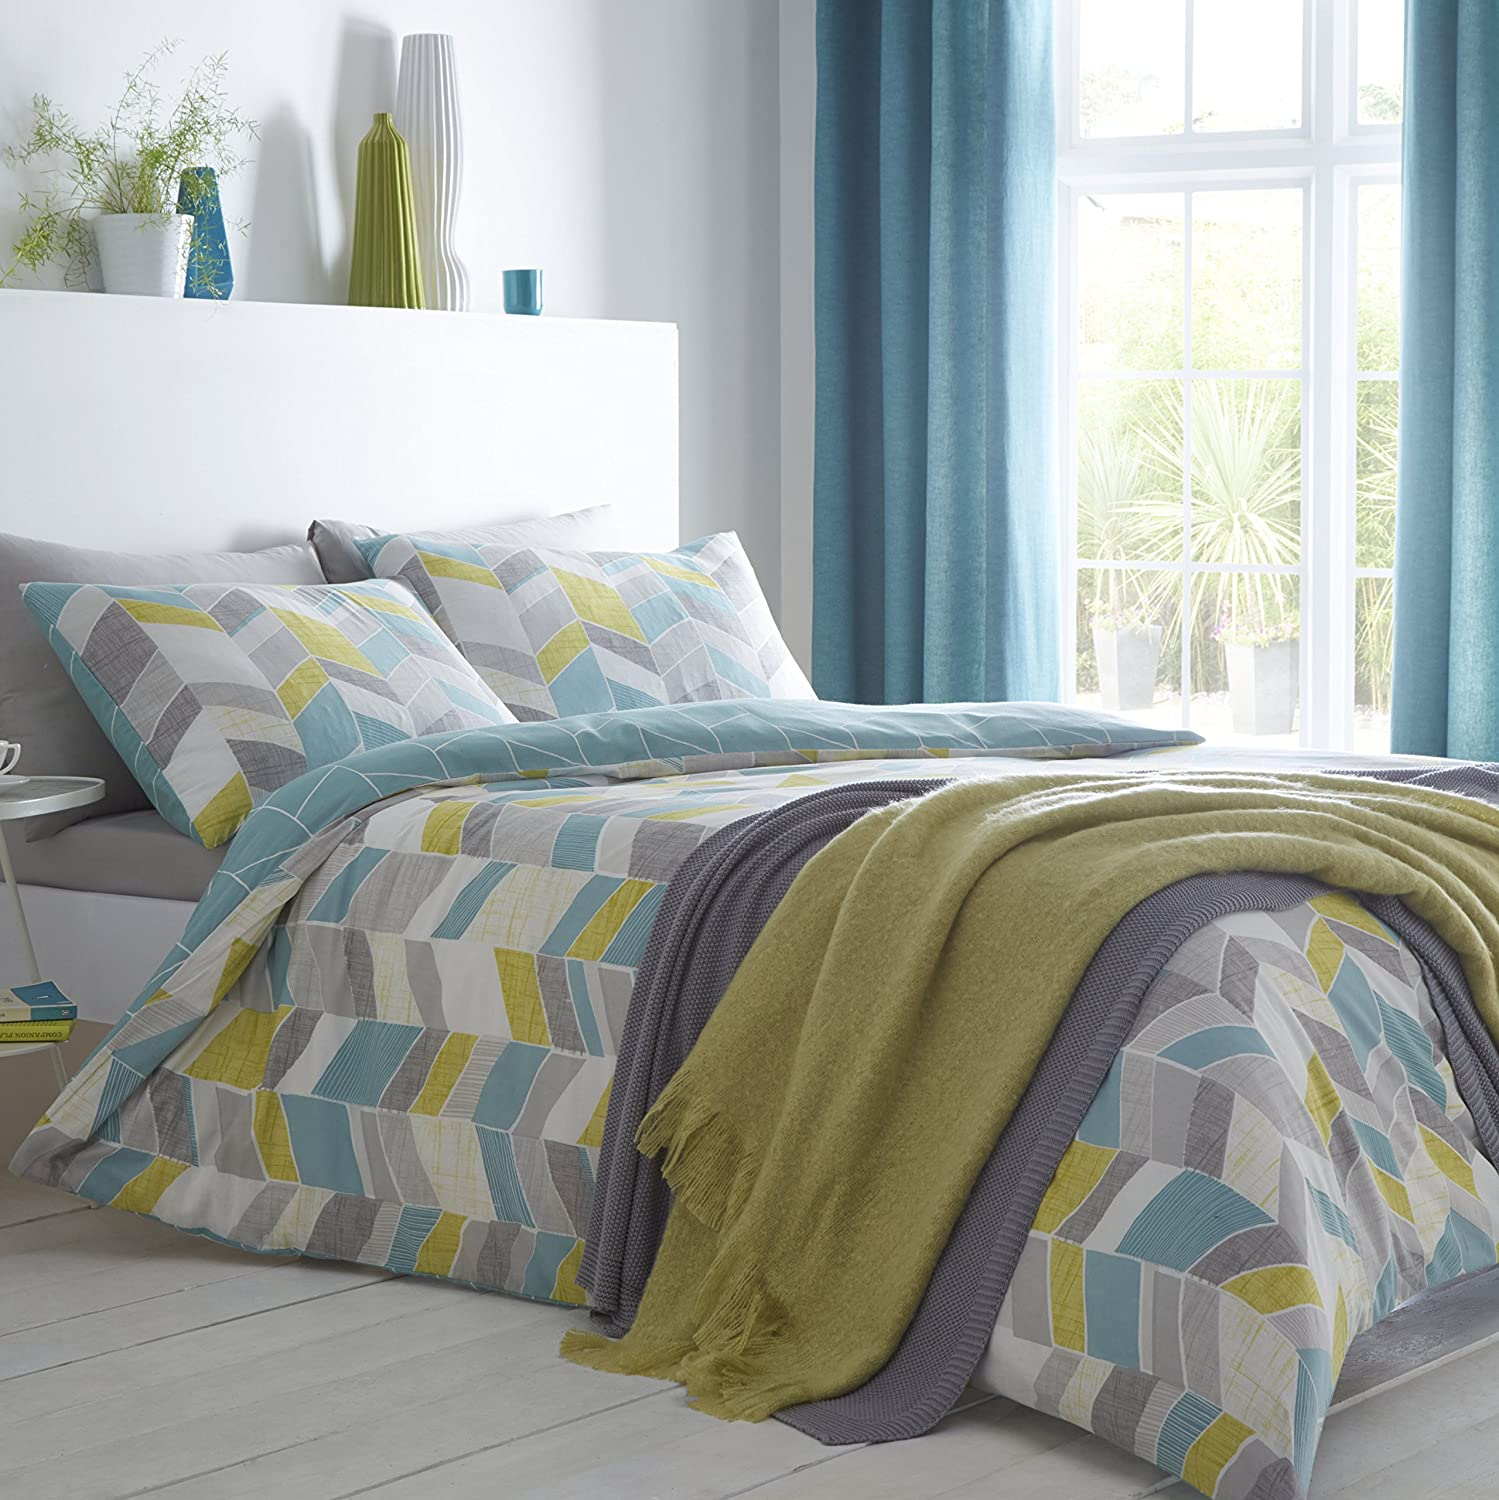 Fusion antina teal mustard green and grey angled colour blocks face and solid reverse duvet cover set double amazon co uk kitchen home